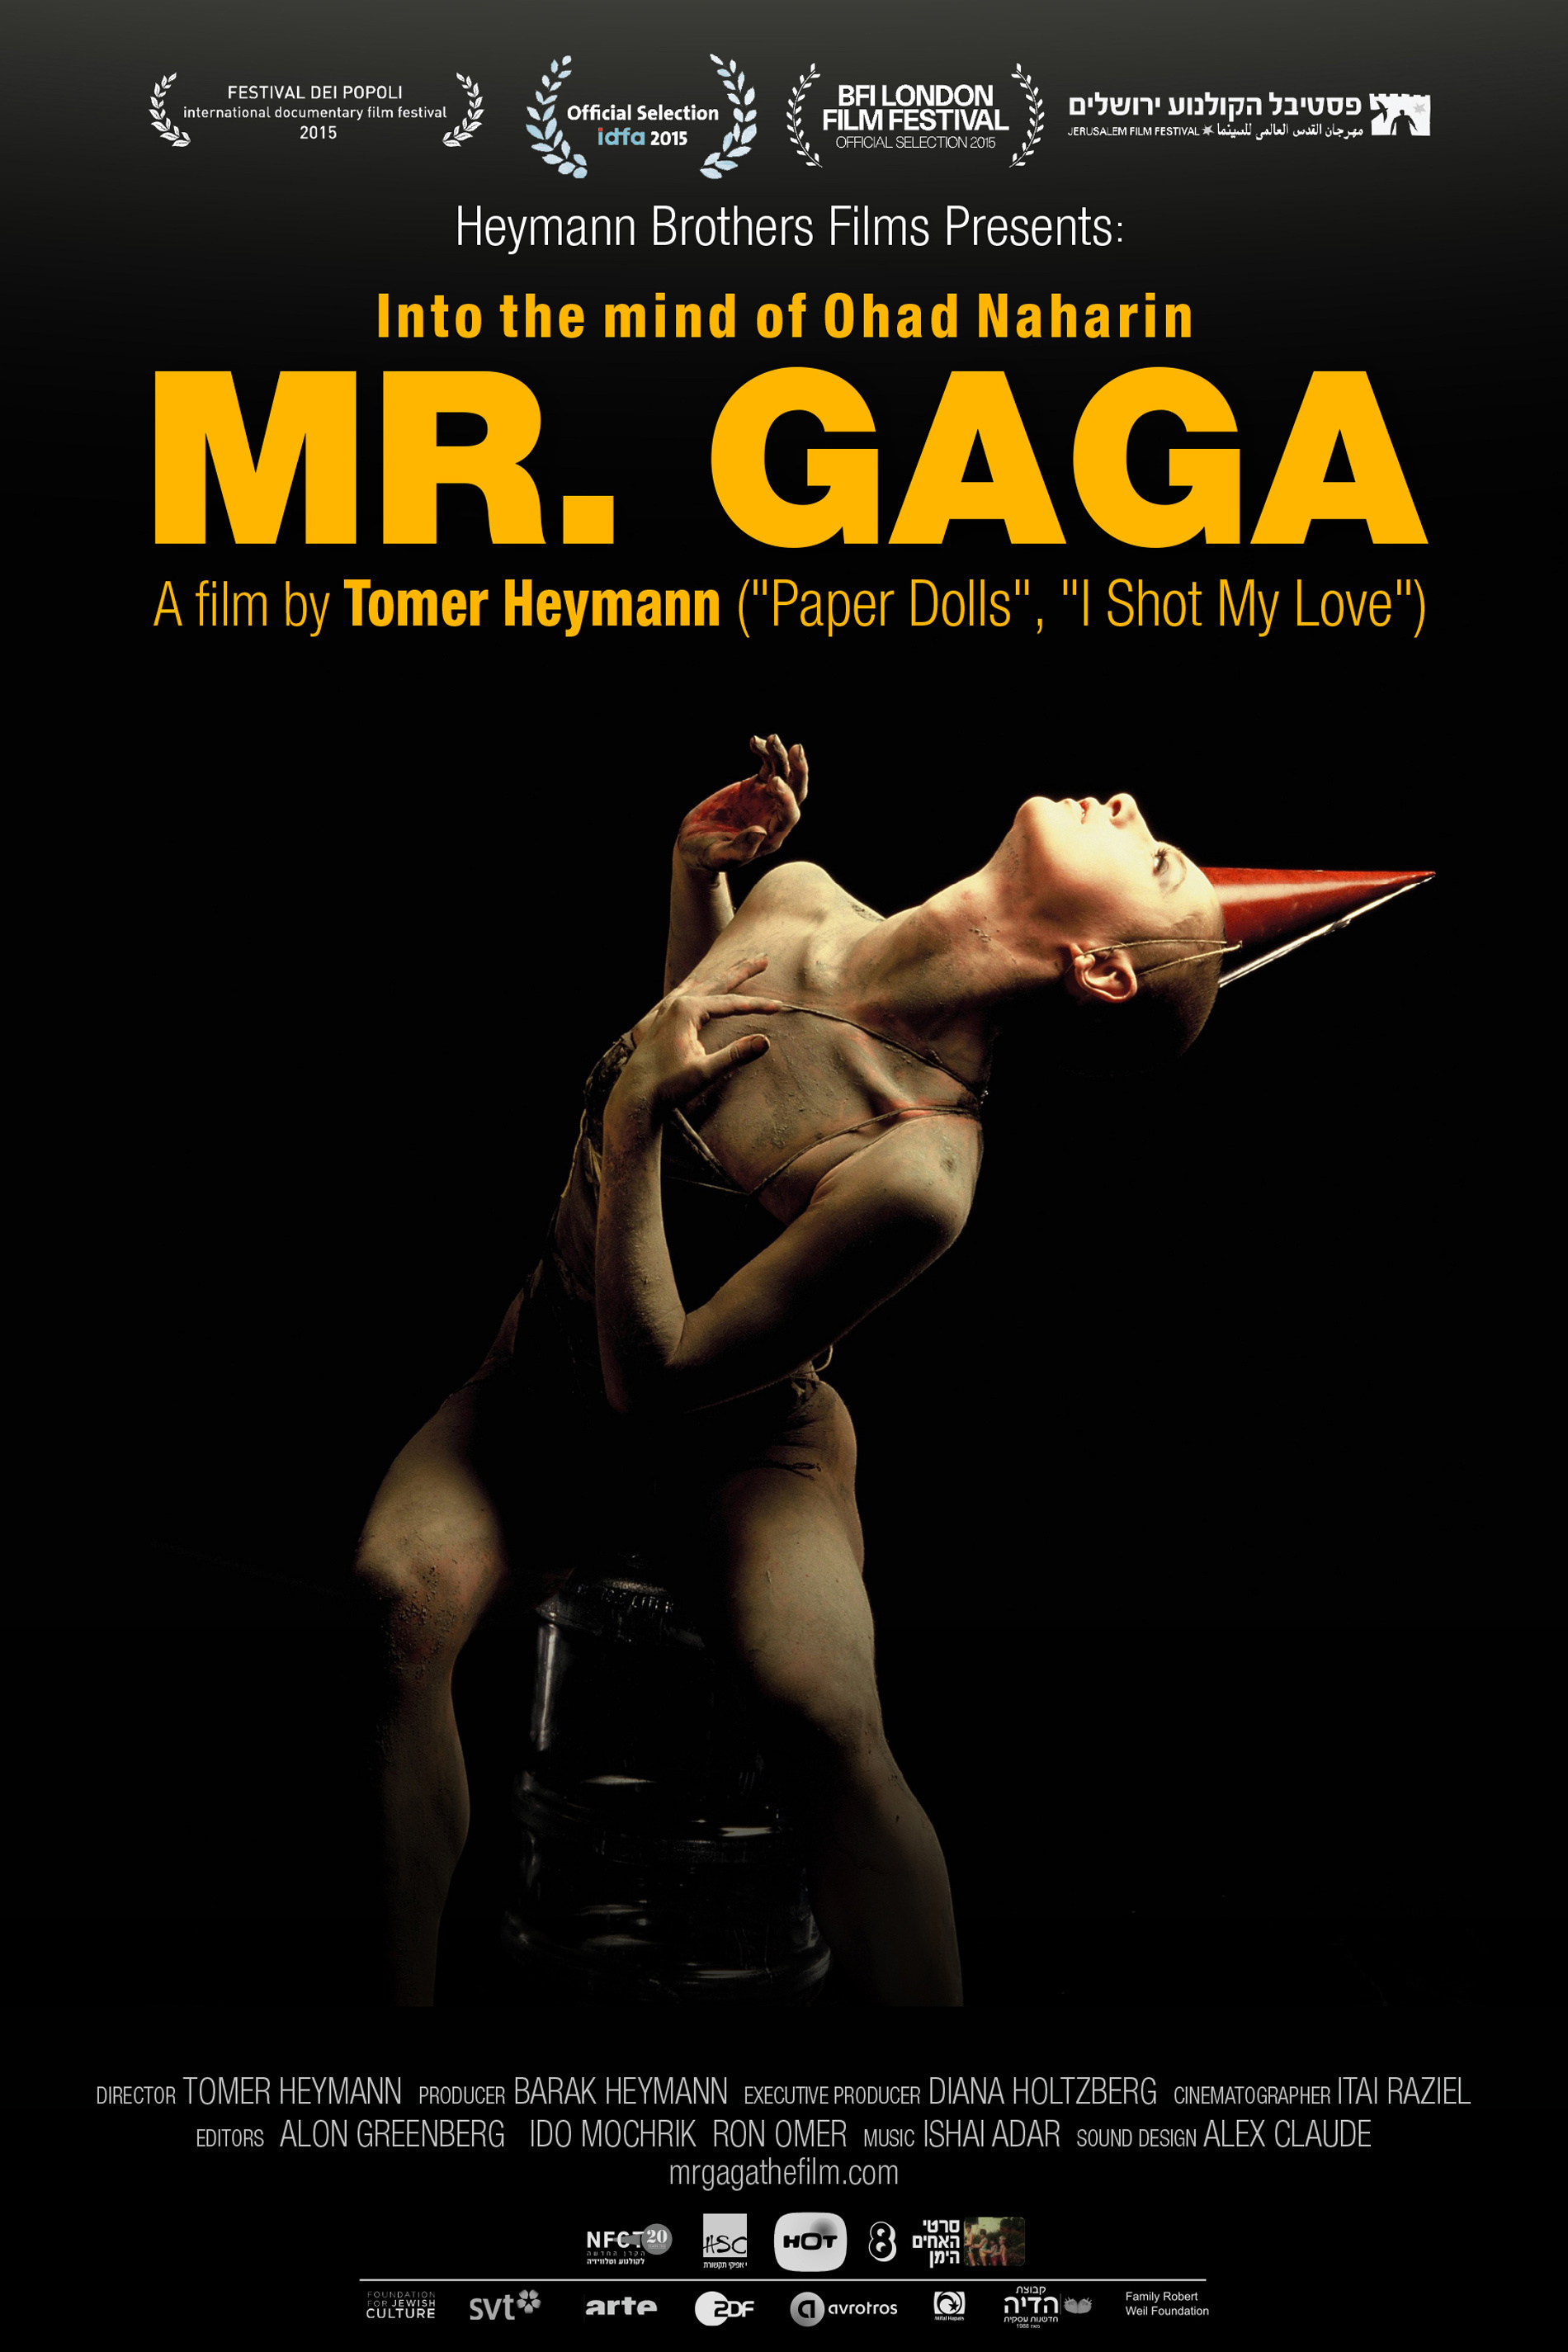 (2015) Mr. Gaga tells the story of Ohad Naharin, renowned choreographer and artistic director of the Batsheva Dance Company, an artistic genius who redefined the language of modern dance. -